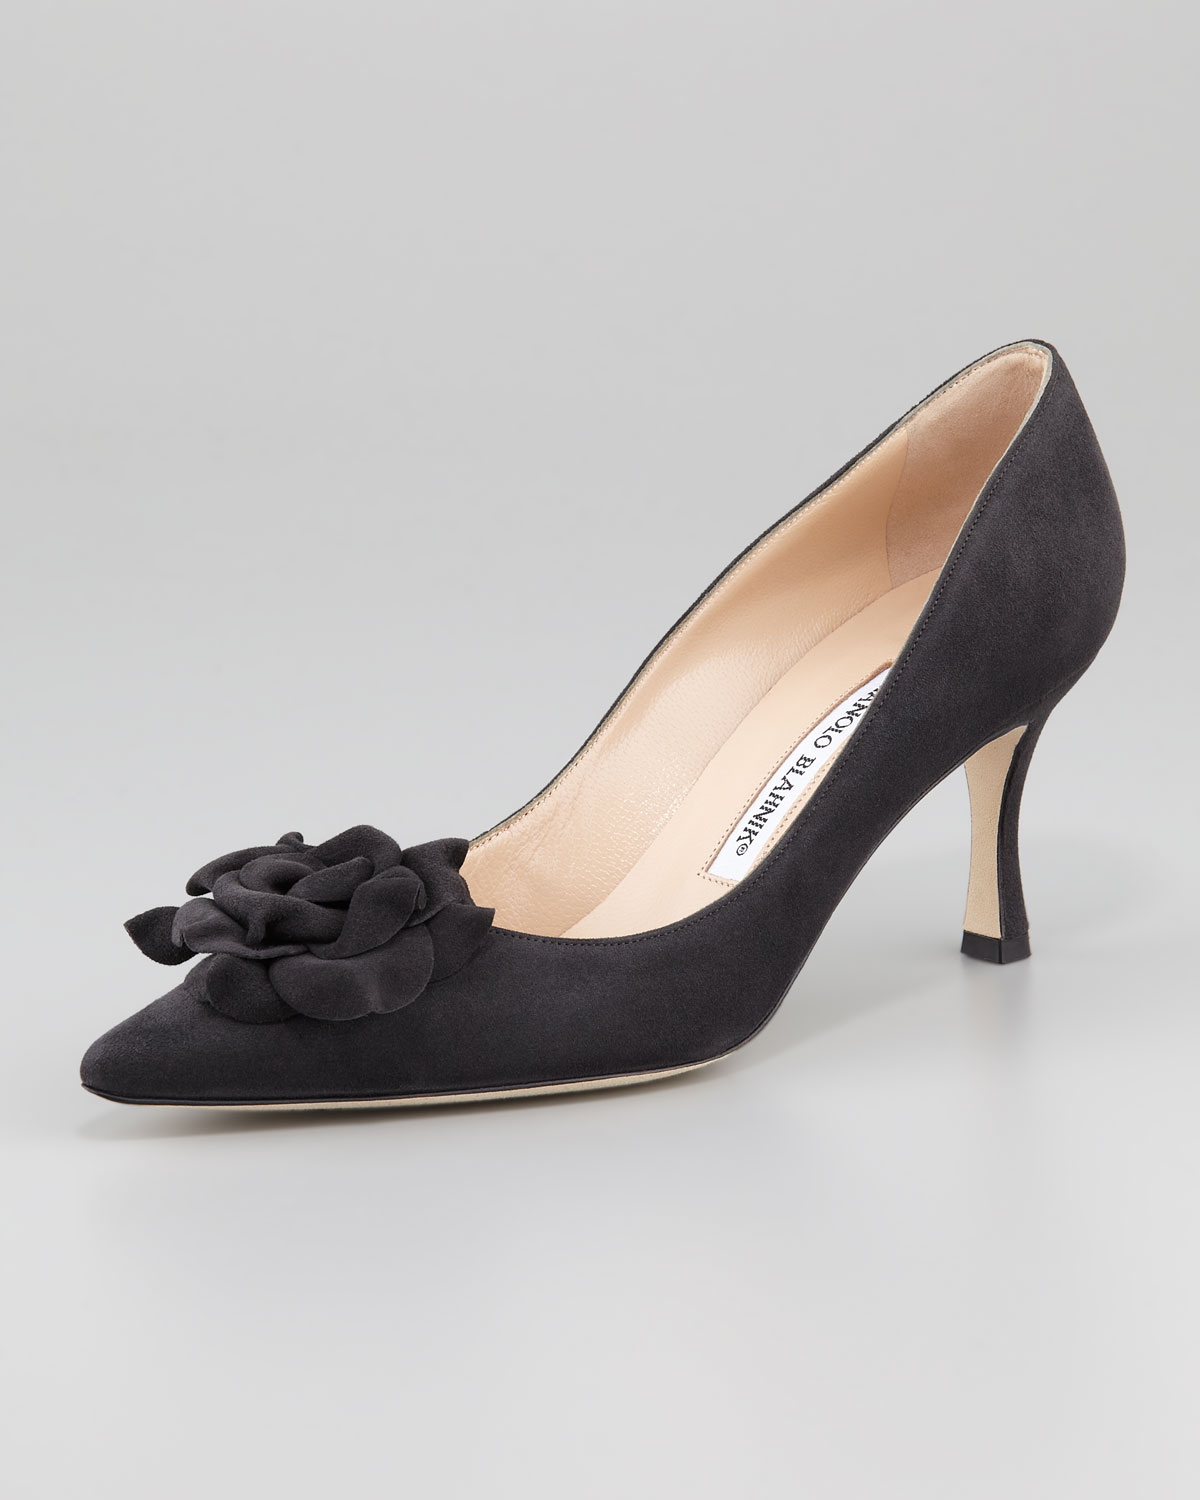 clearance top quality Manolo Blahnik Suede Floral Pumps discount footlocker finishline sale with paypal clearance get authentic release dates cheap online oPU2Hg8